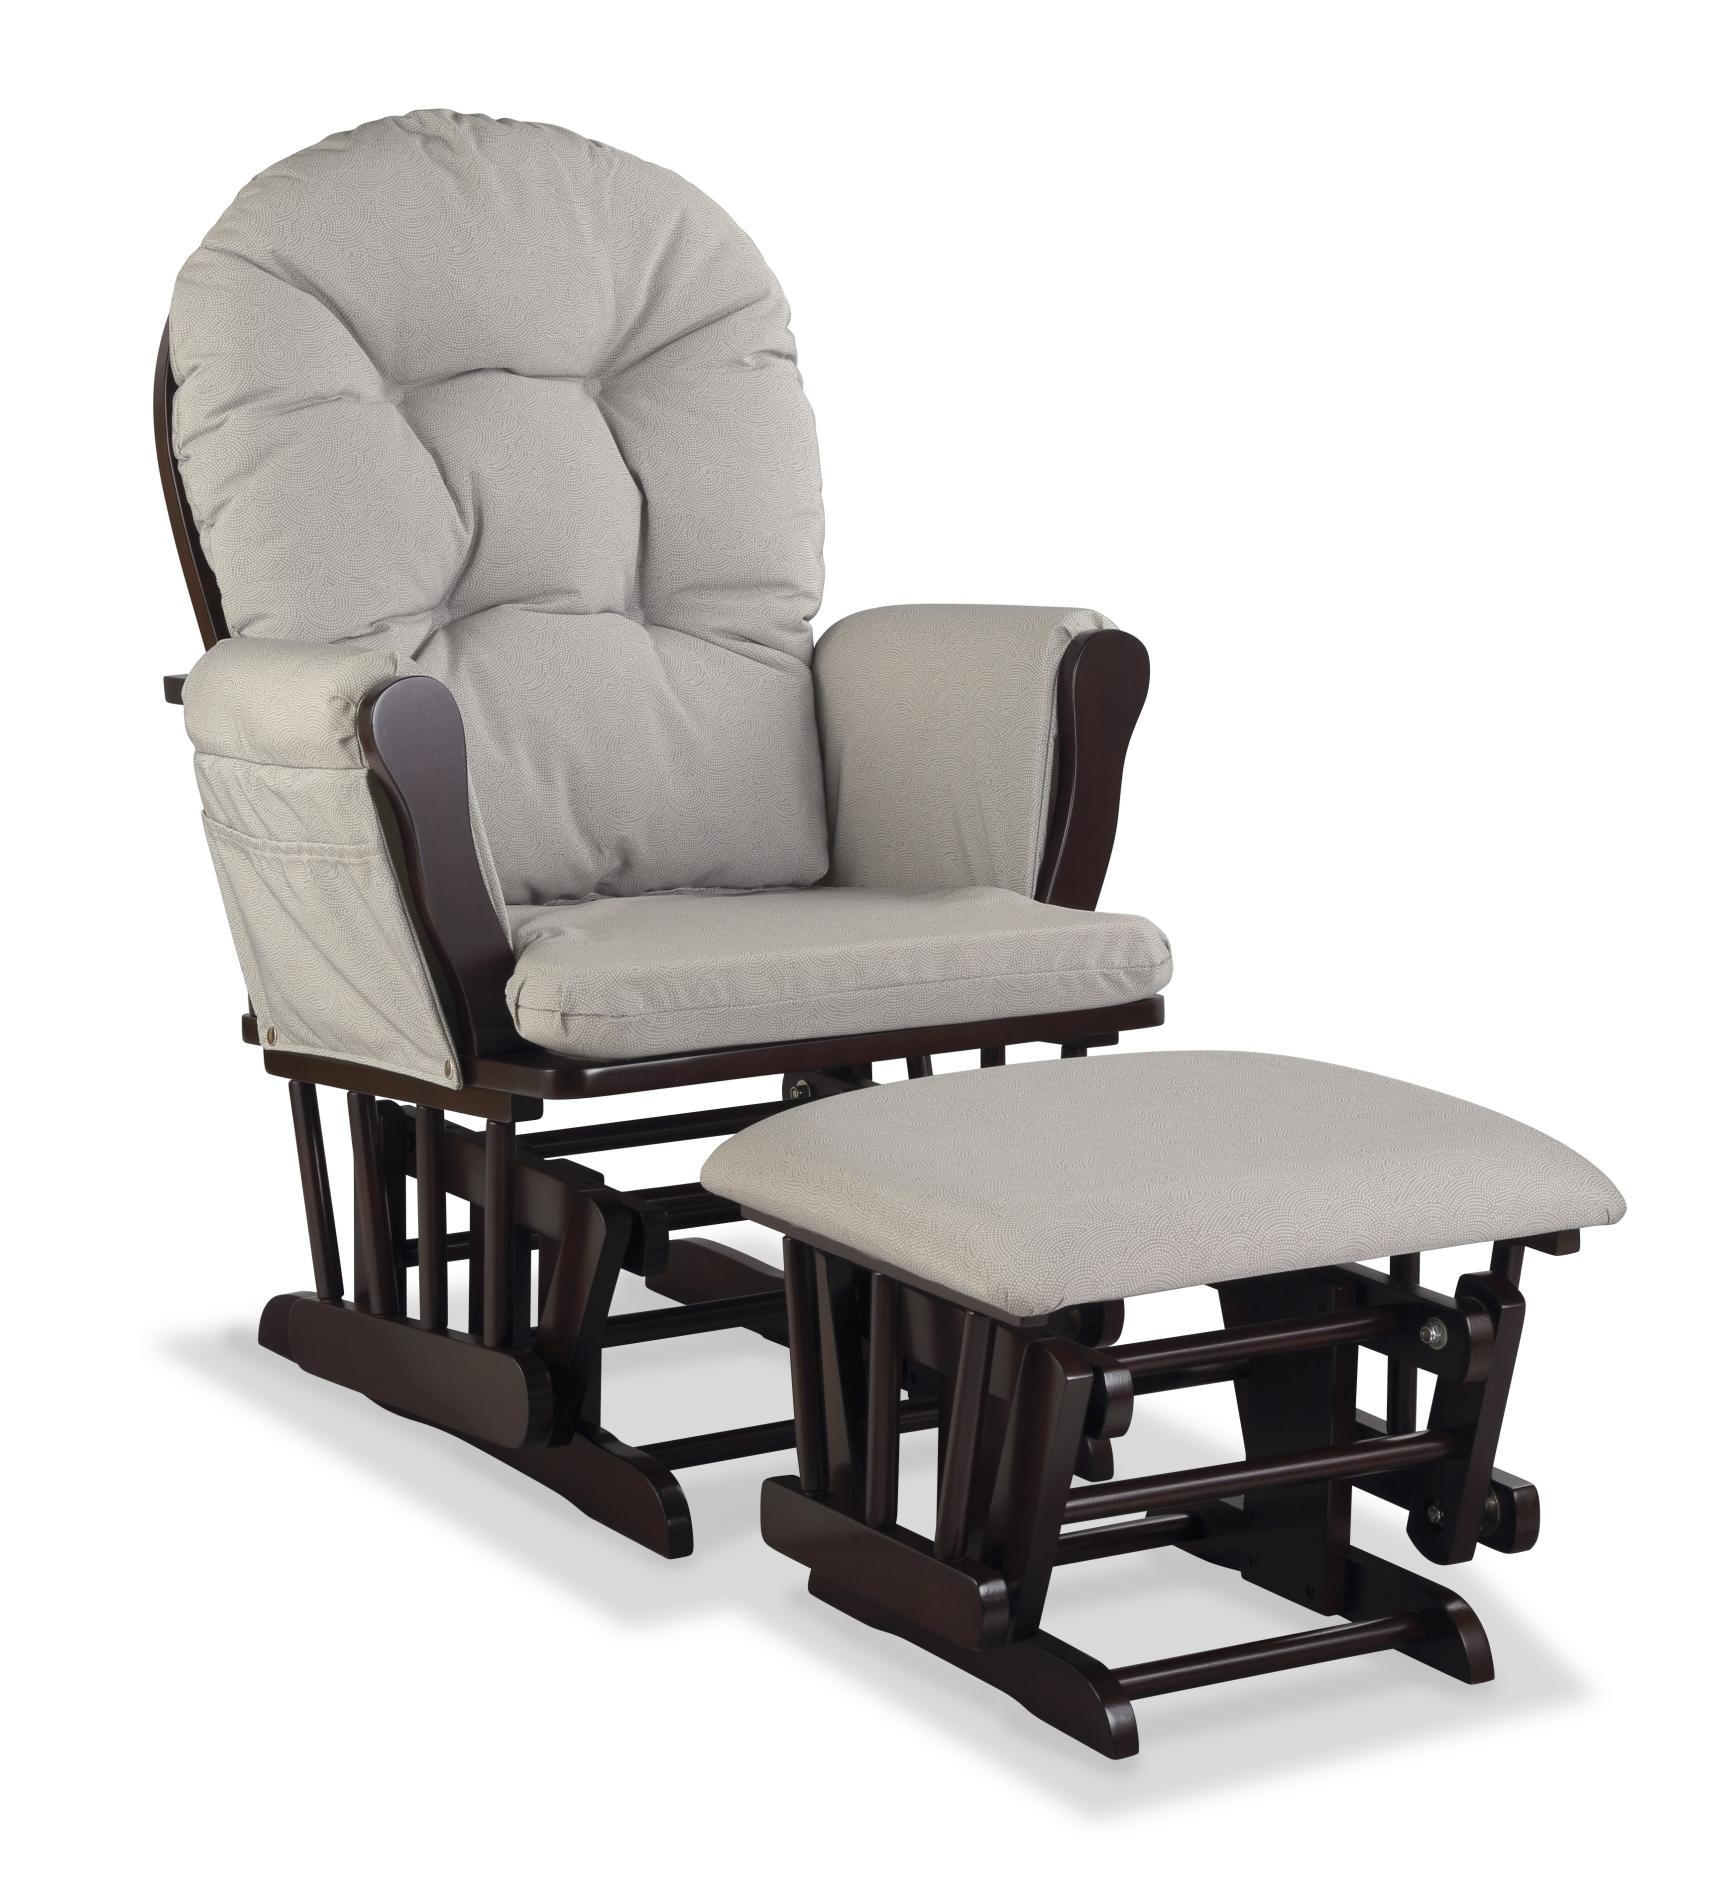 Gliding Rocking Chair Graco Nursery Glider Chair And Ottoman